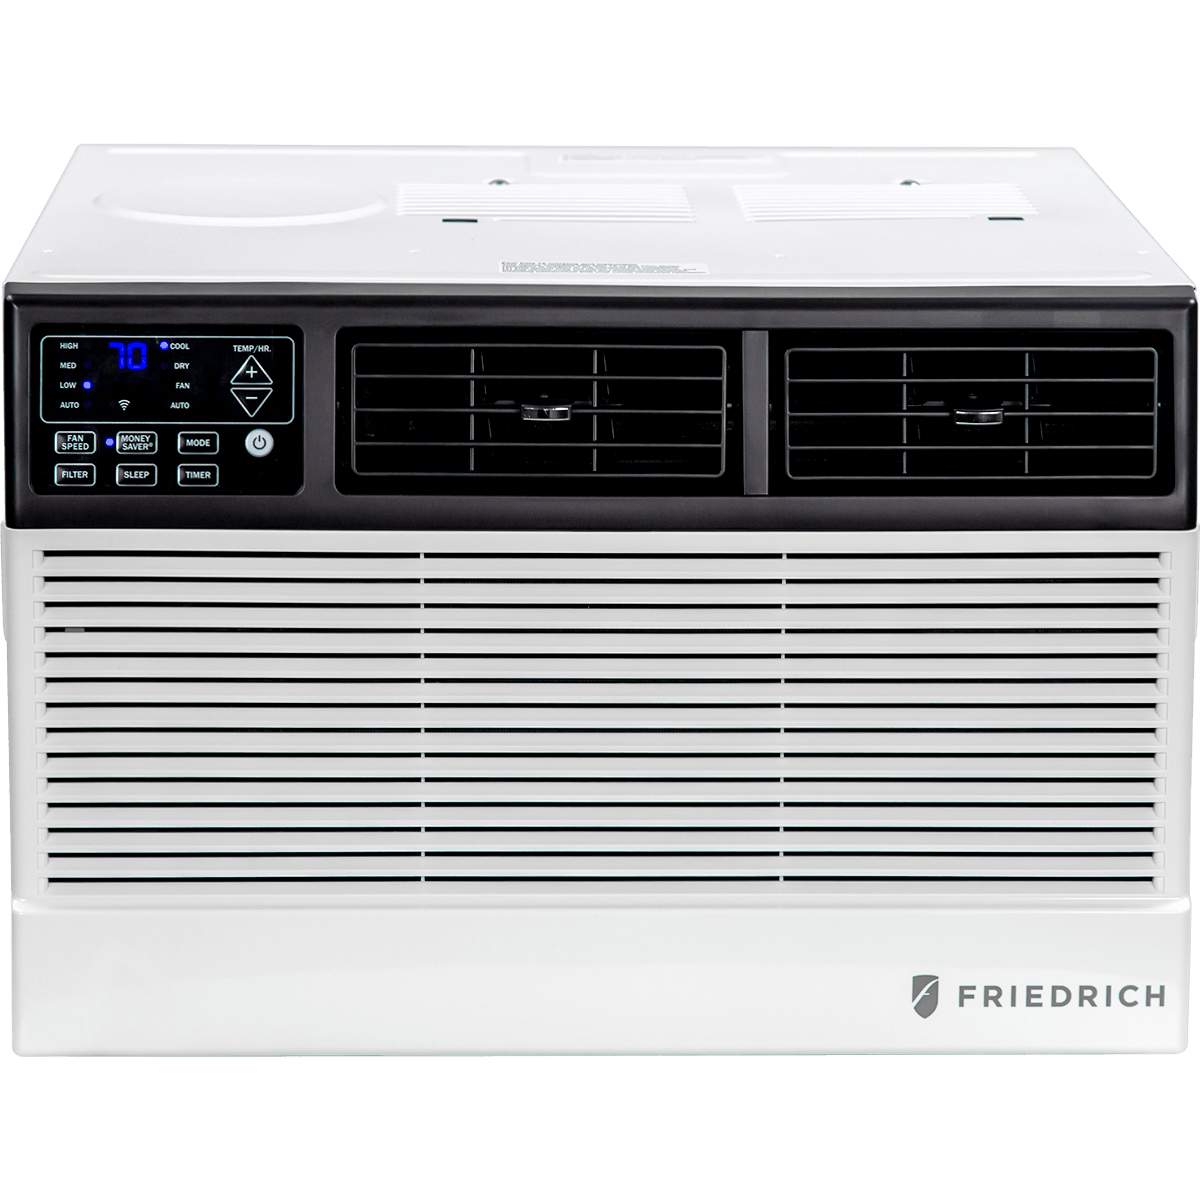 Buy Cheap Friedrich Chill Premier 12000 Btu Window Air Conditioner Bestairpurifiers Best Air Ai In 2020 Window Air Conditioner Wall Air Conditioner Air Conditioner